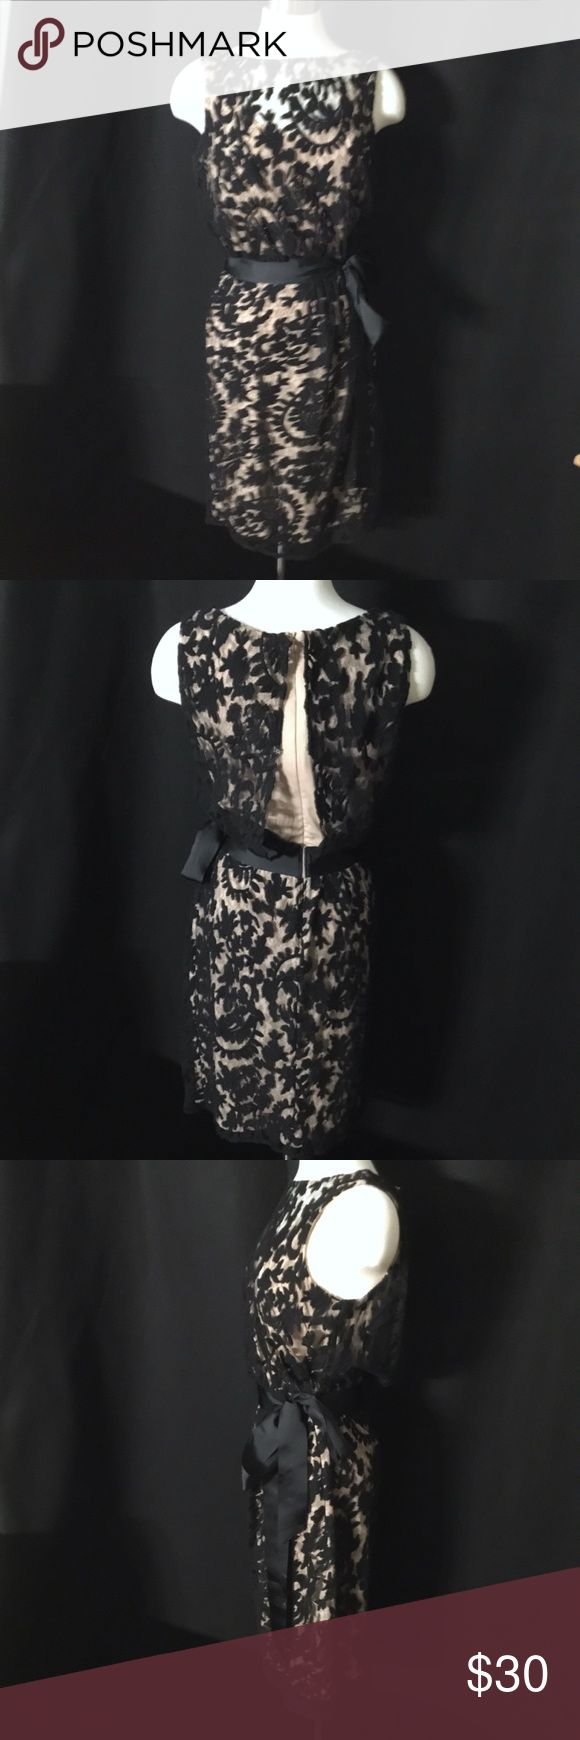 Adrianna Papell Cocktail Dress! Beautiful black lace over a cream cocktail dress. Great pre-owned condition. Adrianna Papell Dresses